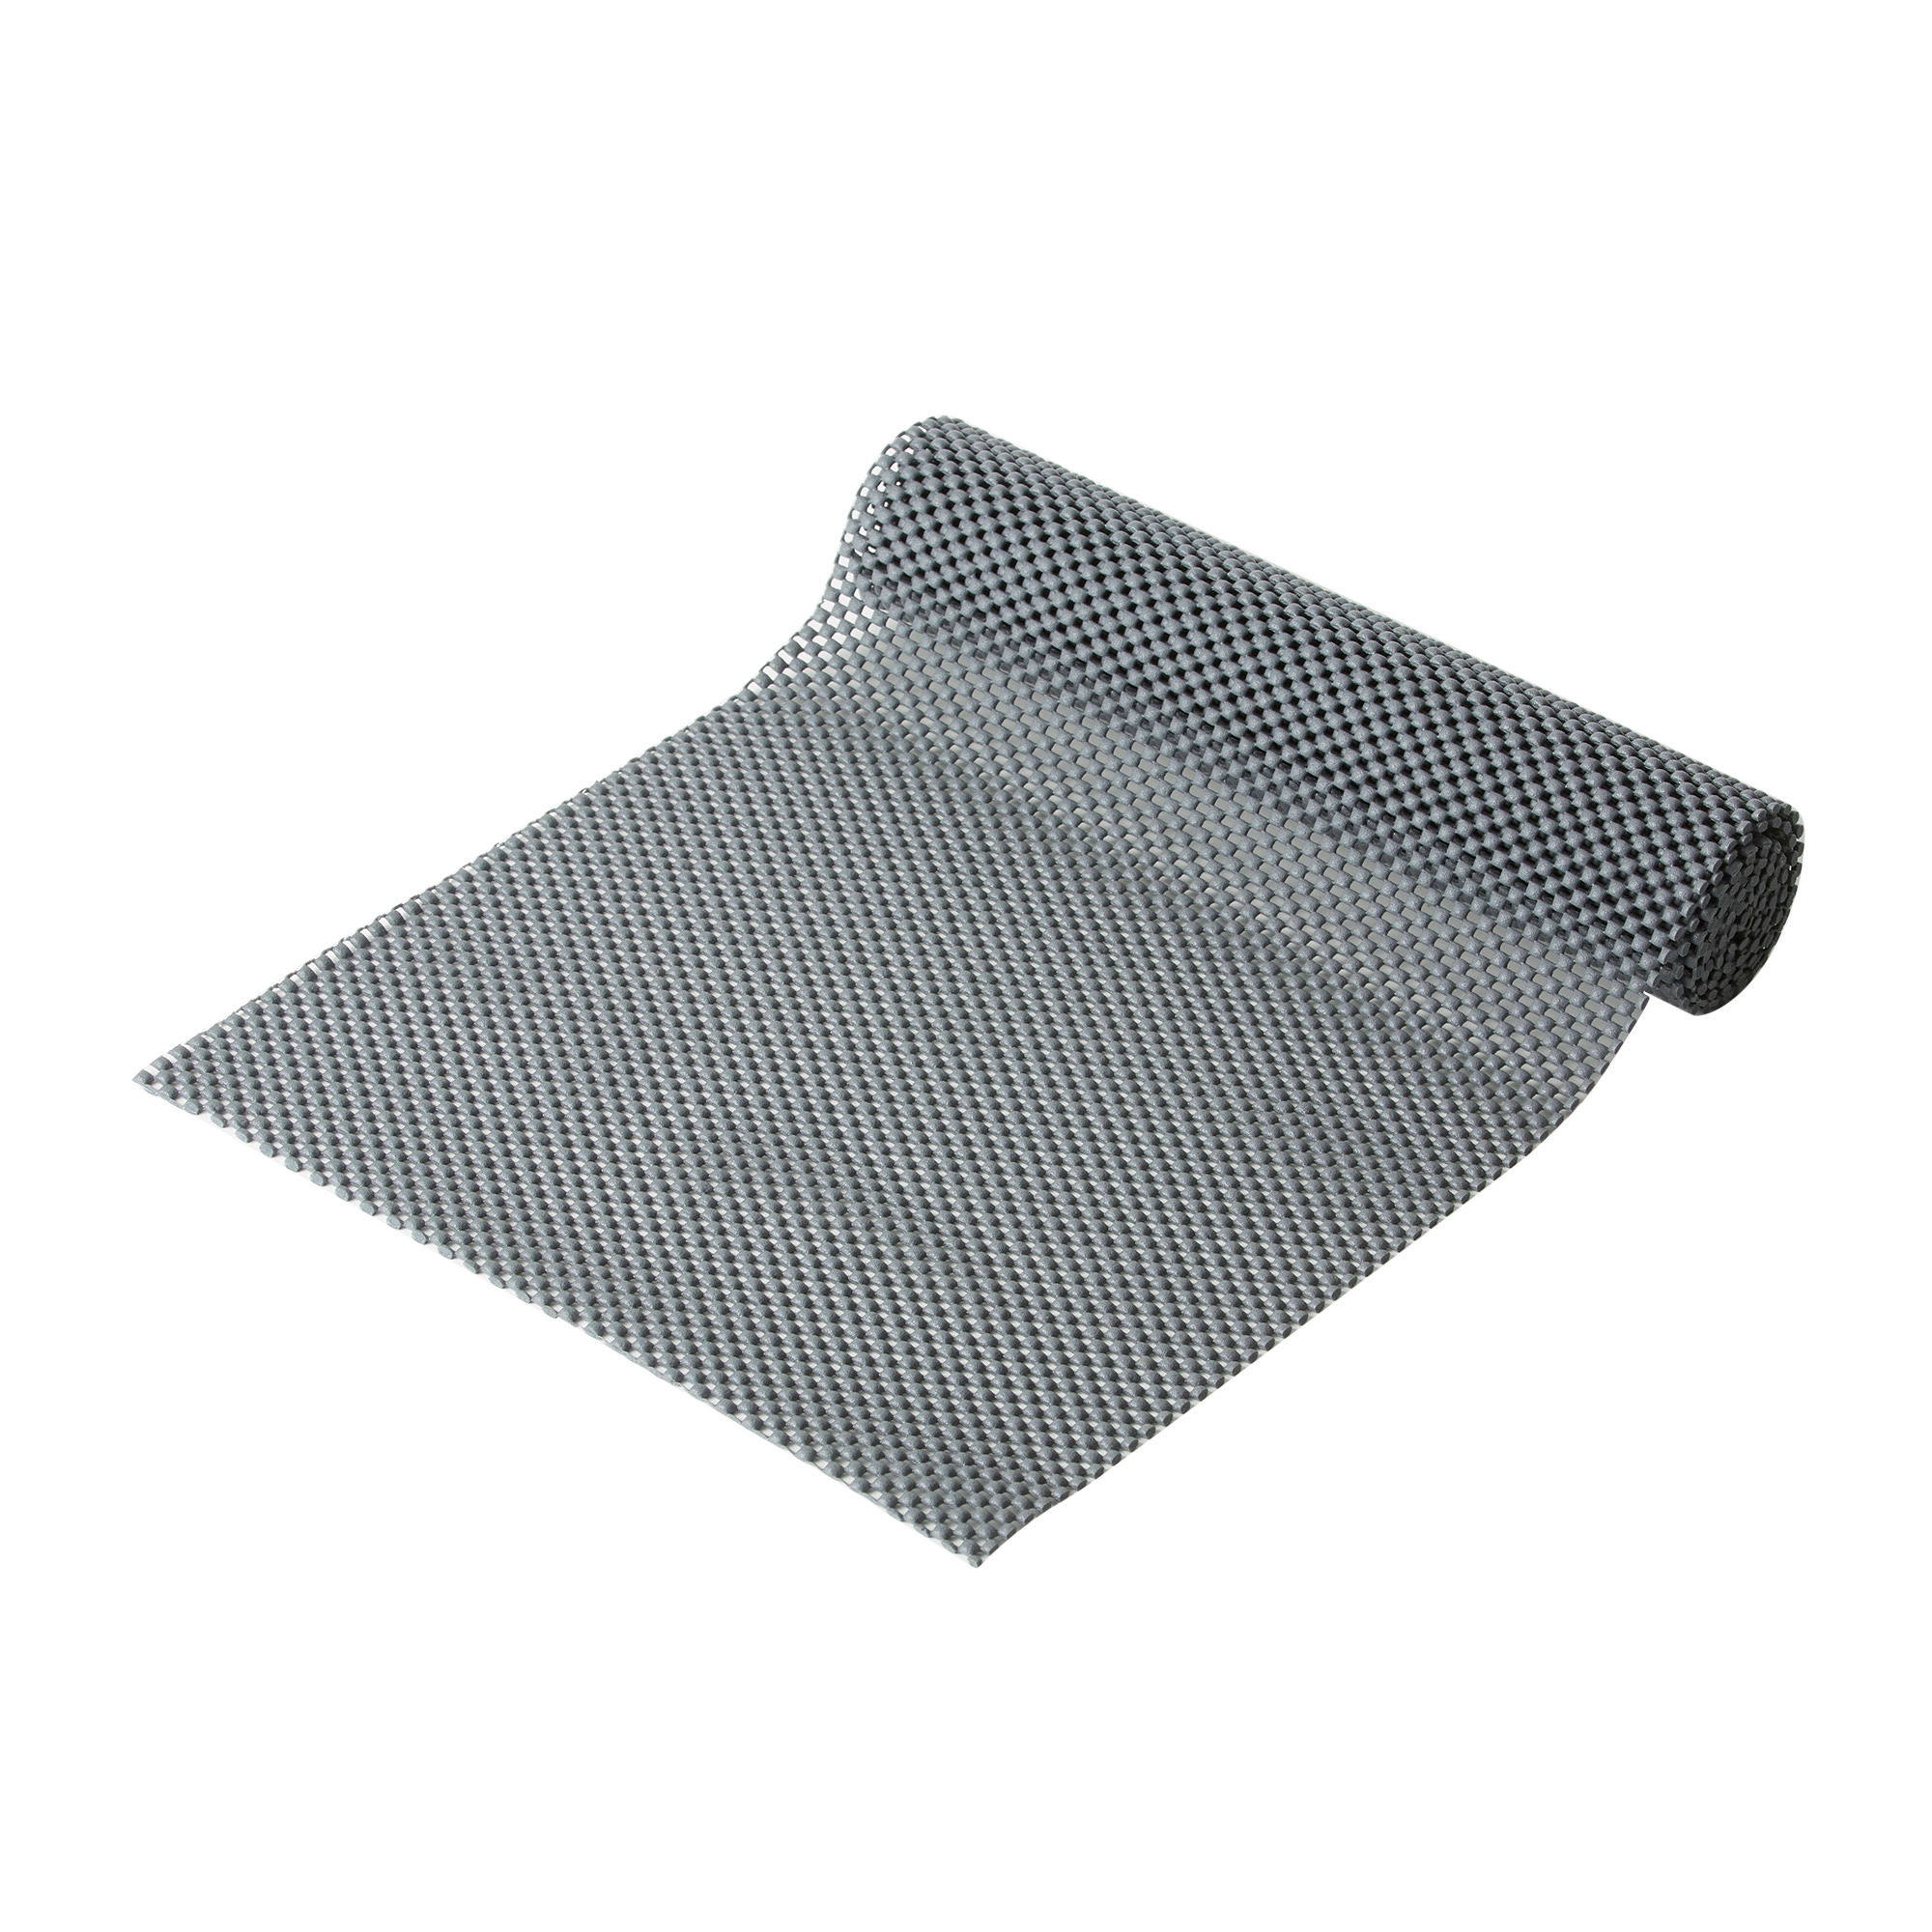 Kitchen Pro Anti-Slip Mat 30x150cm Grey